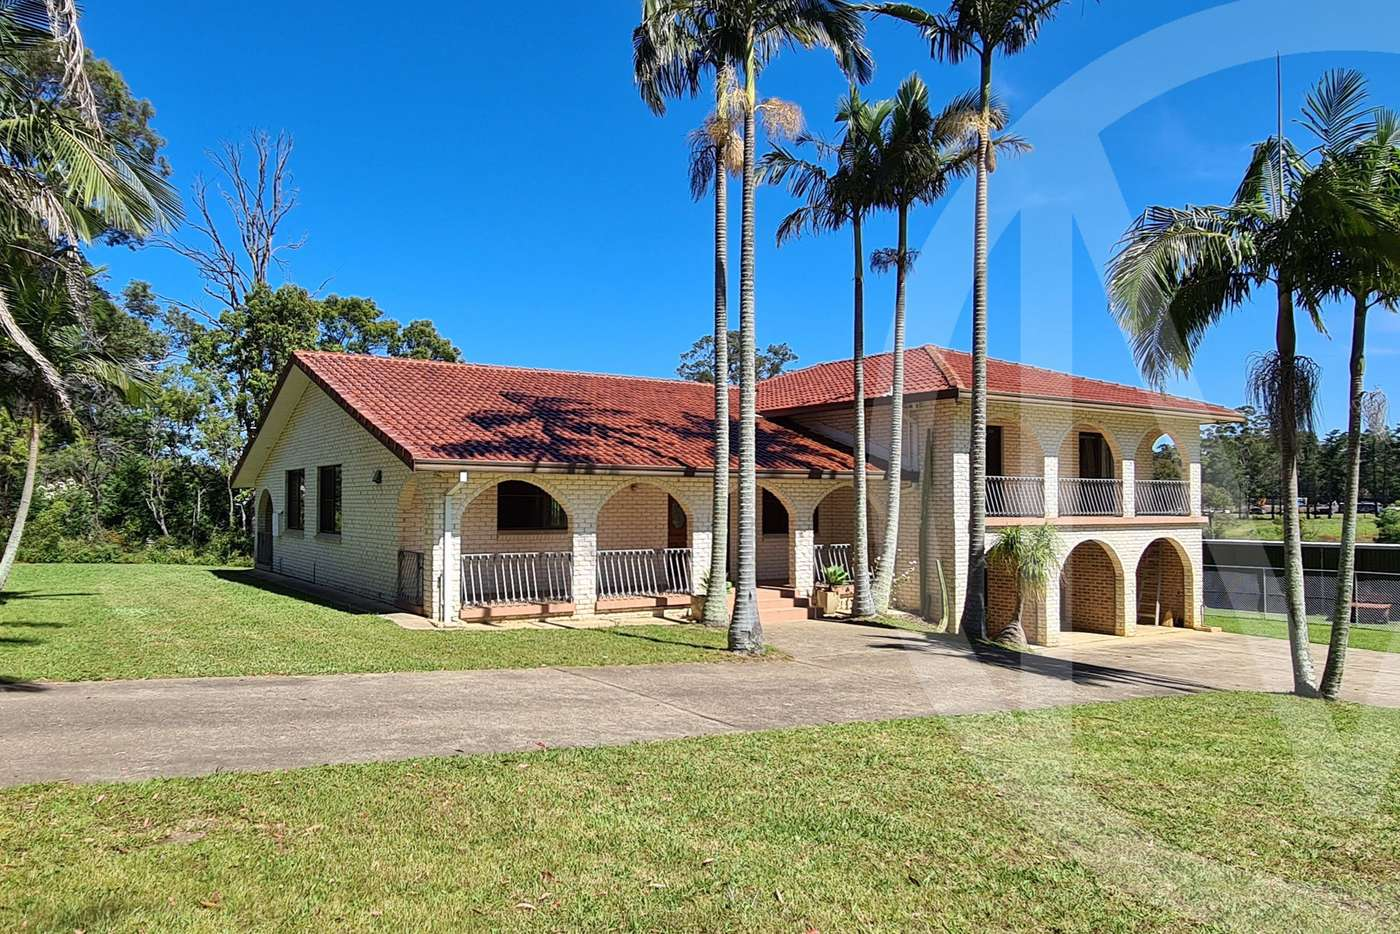 Main view of Homely house listing, 2 Vineys Road, Dural NSW 2158